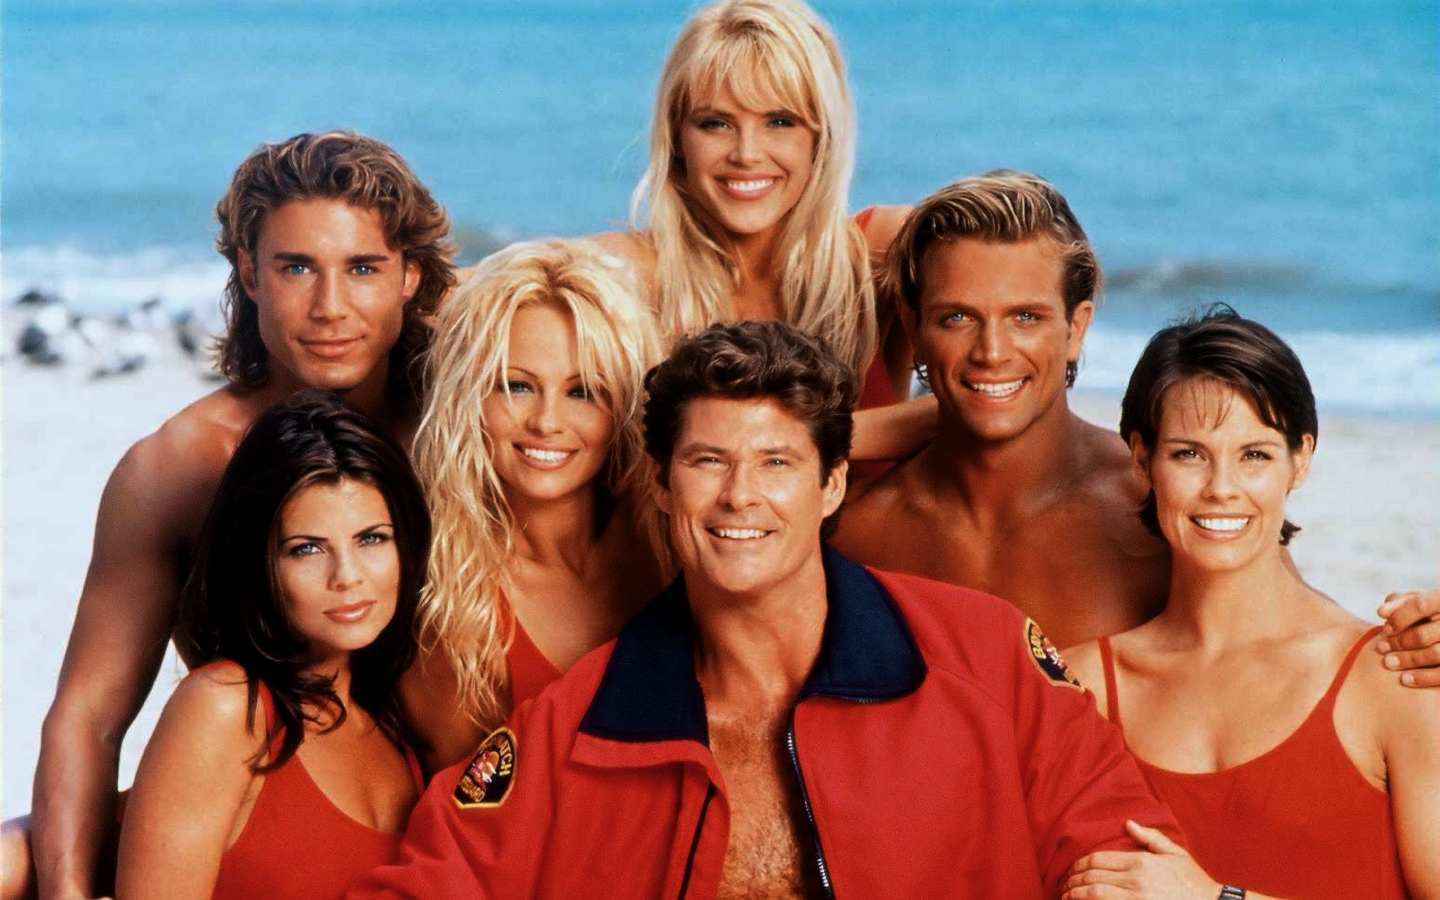 David%20Hasselhoff%20Baywatch%20Wallpape